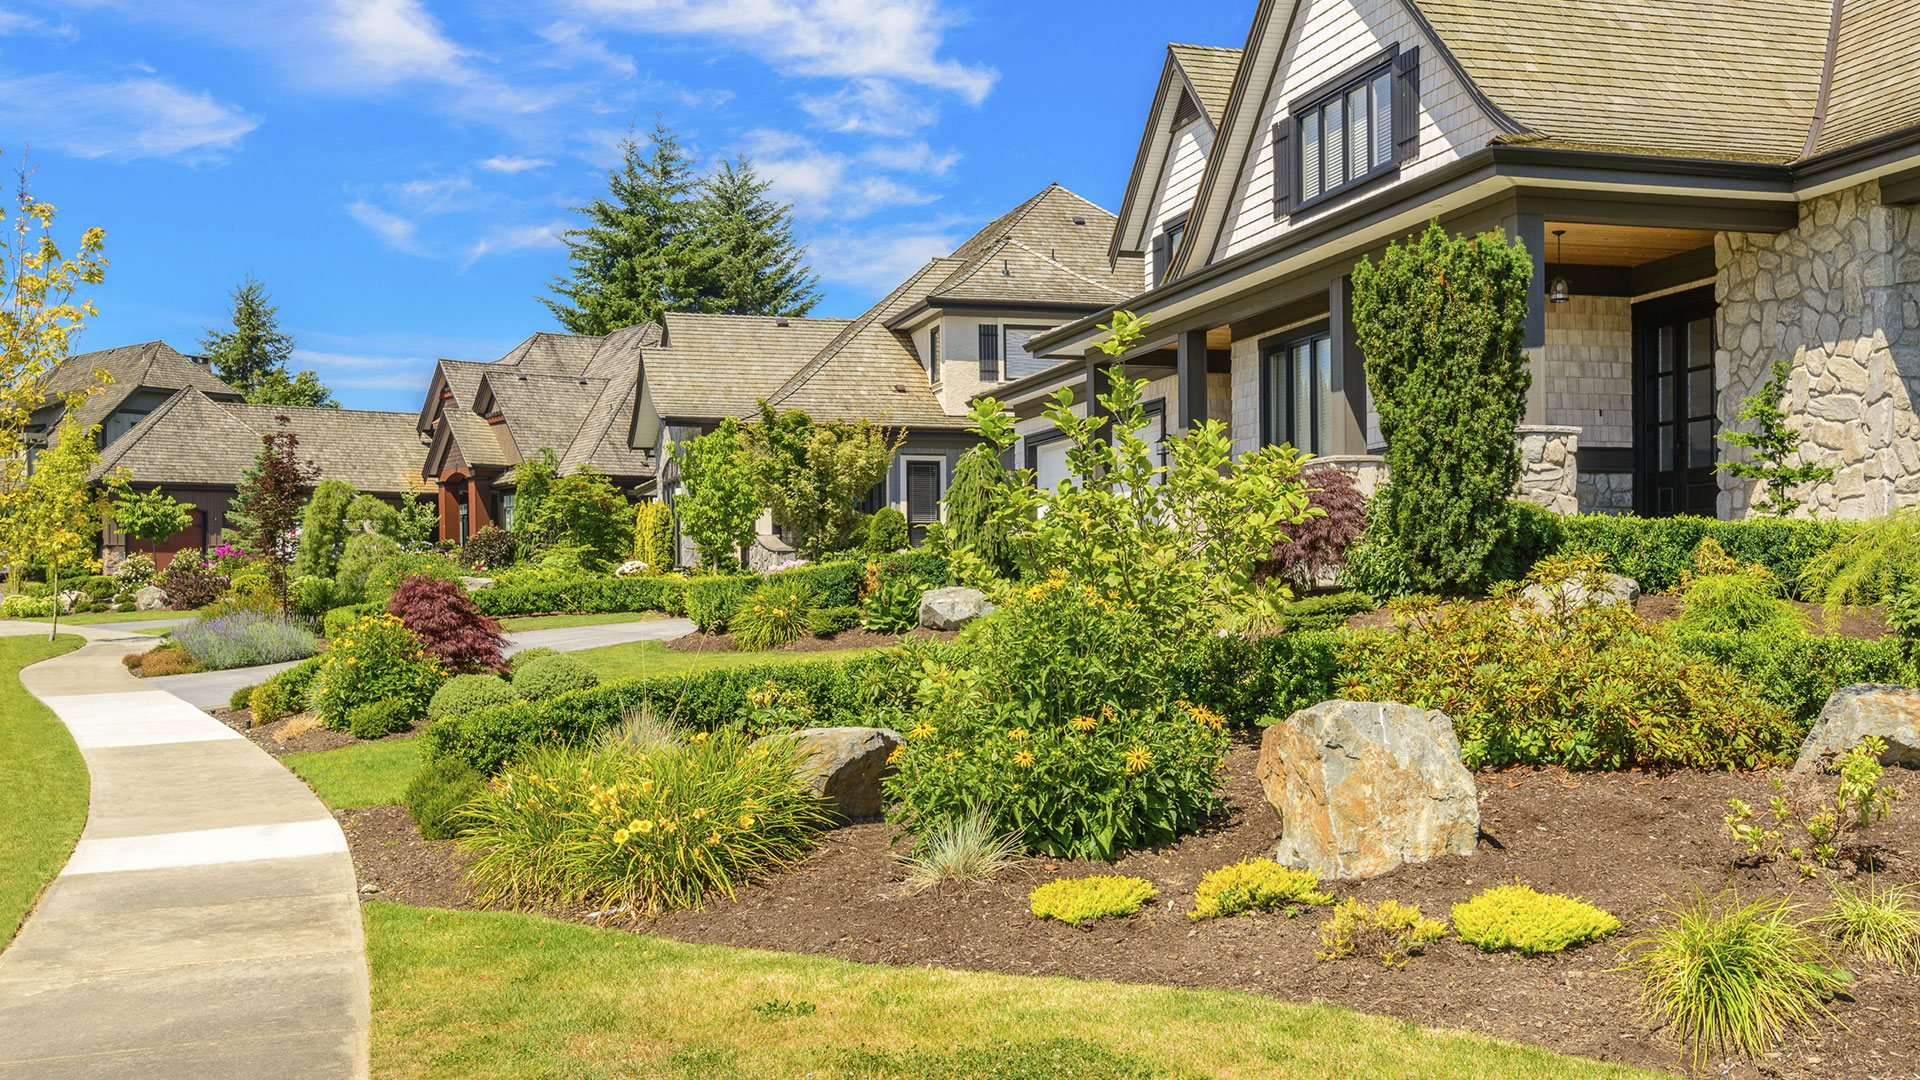 Ground Cover Landscaping Services Sod Installation, Concrete Patios and Irrigation slide 2